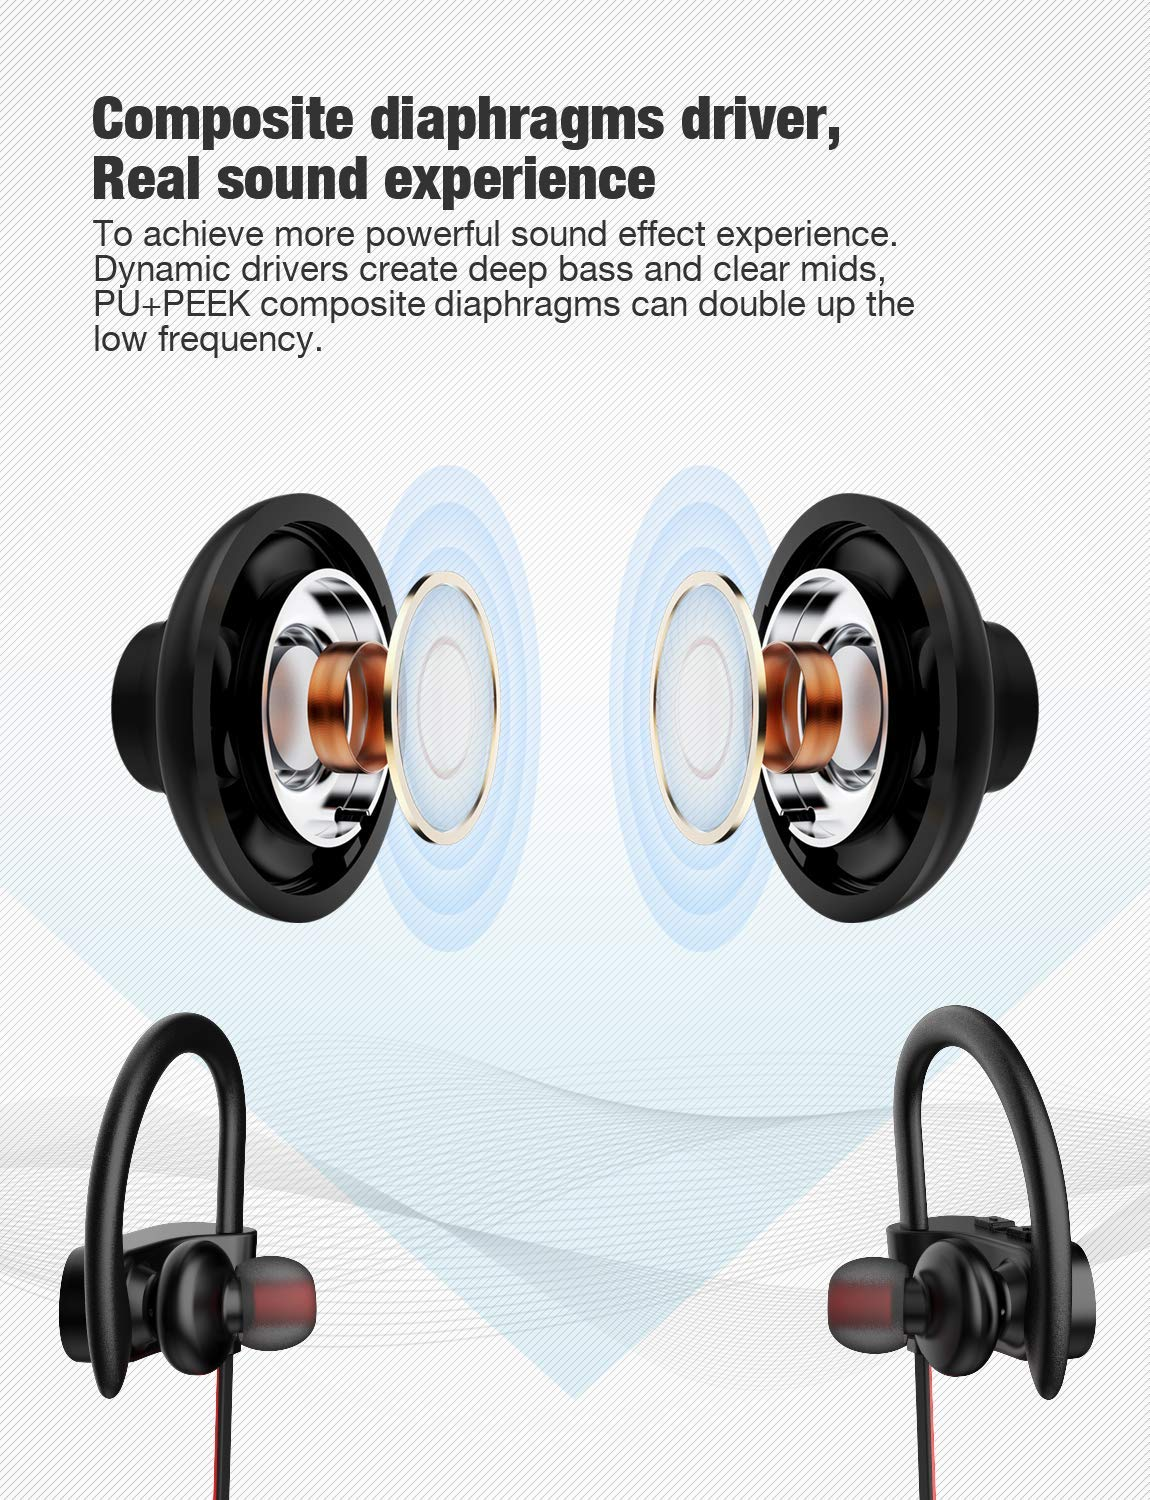 Bluetooth Headphones, Otium Best Wireless Sports Earphones w/Mic IPX7  Waterproof HD Stereo Sweatproof in Ear Earbuds for Gym Running Workout 8  Hour